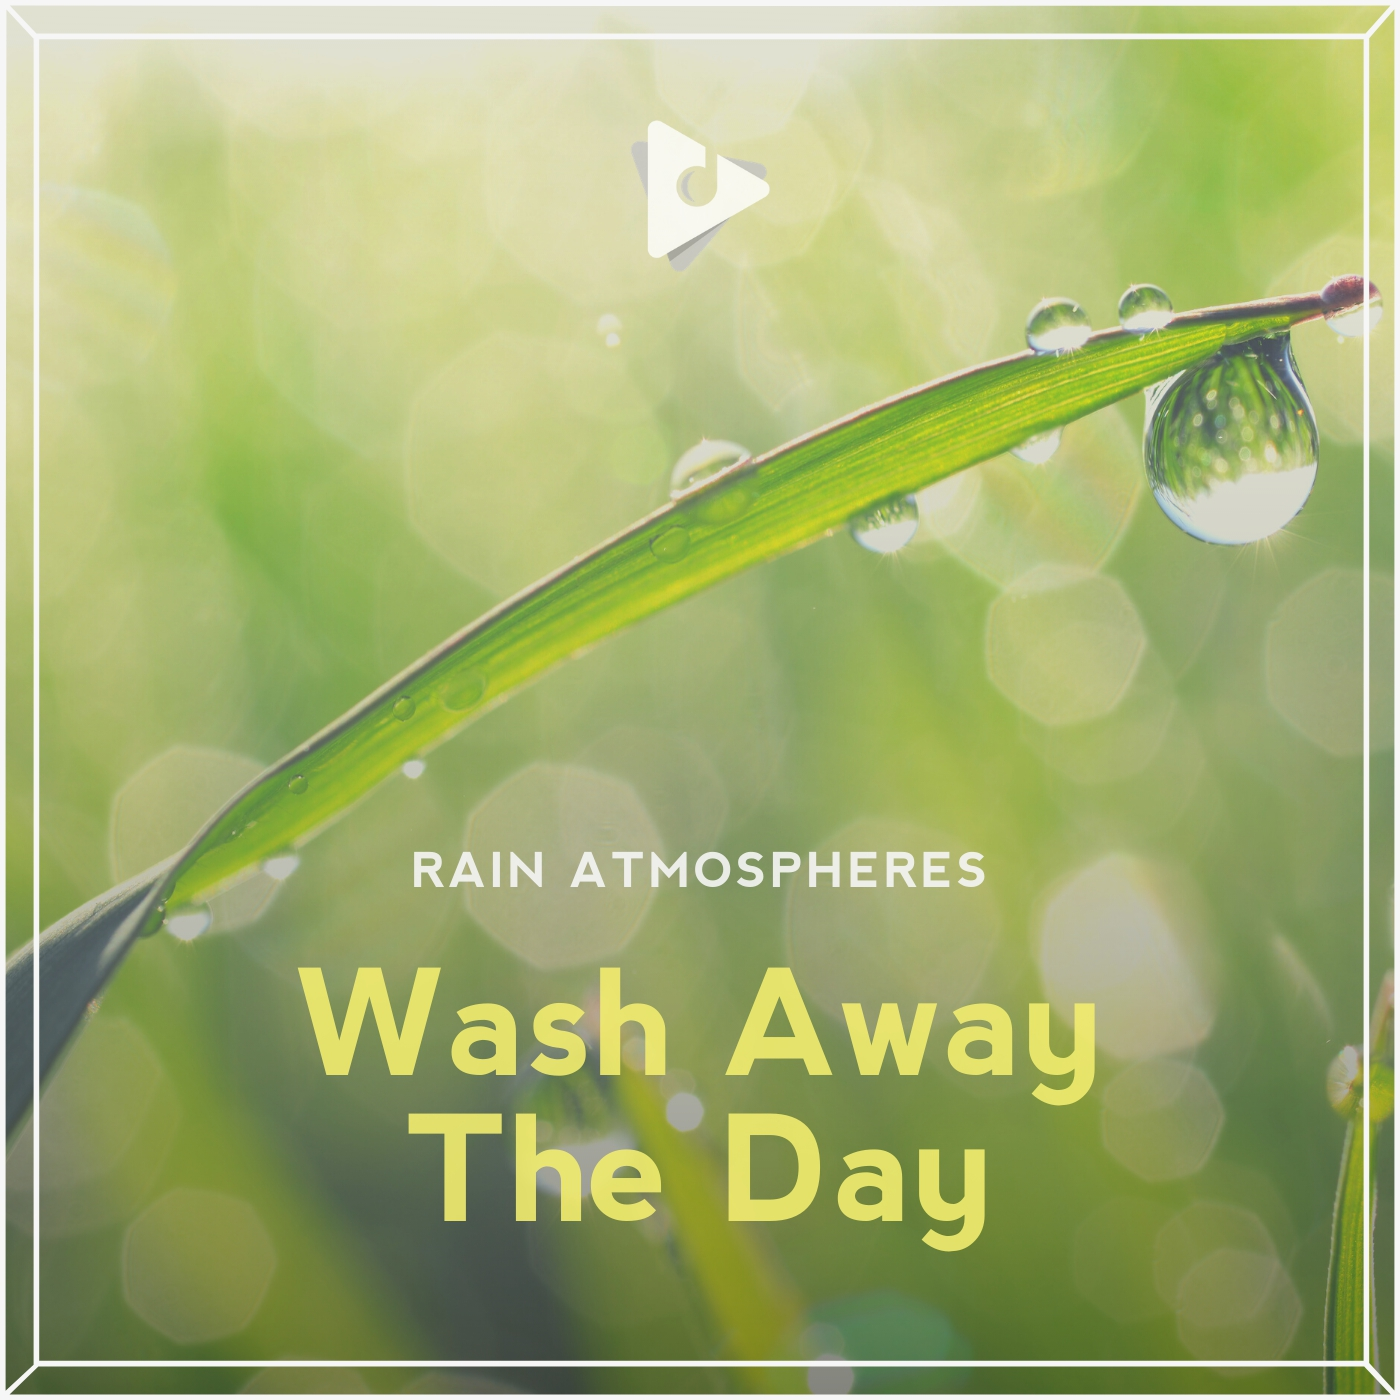 Wash Away The Day